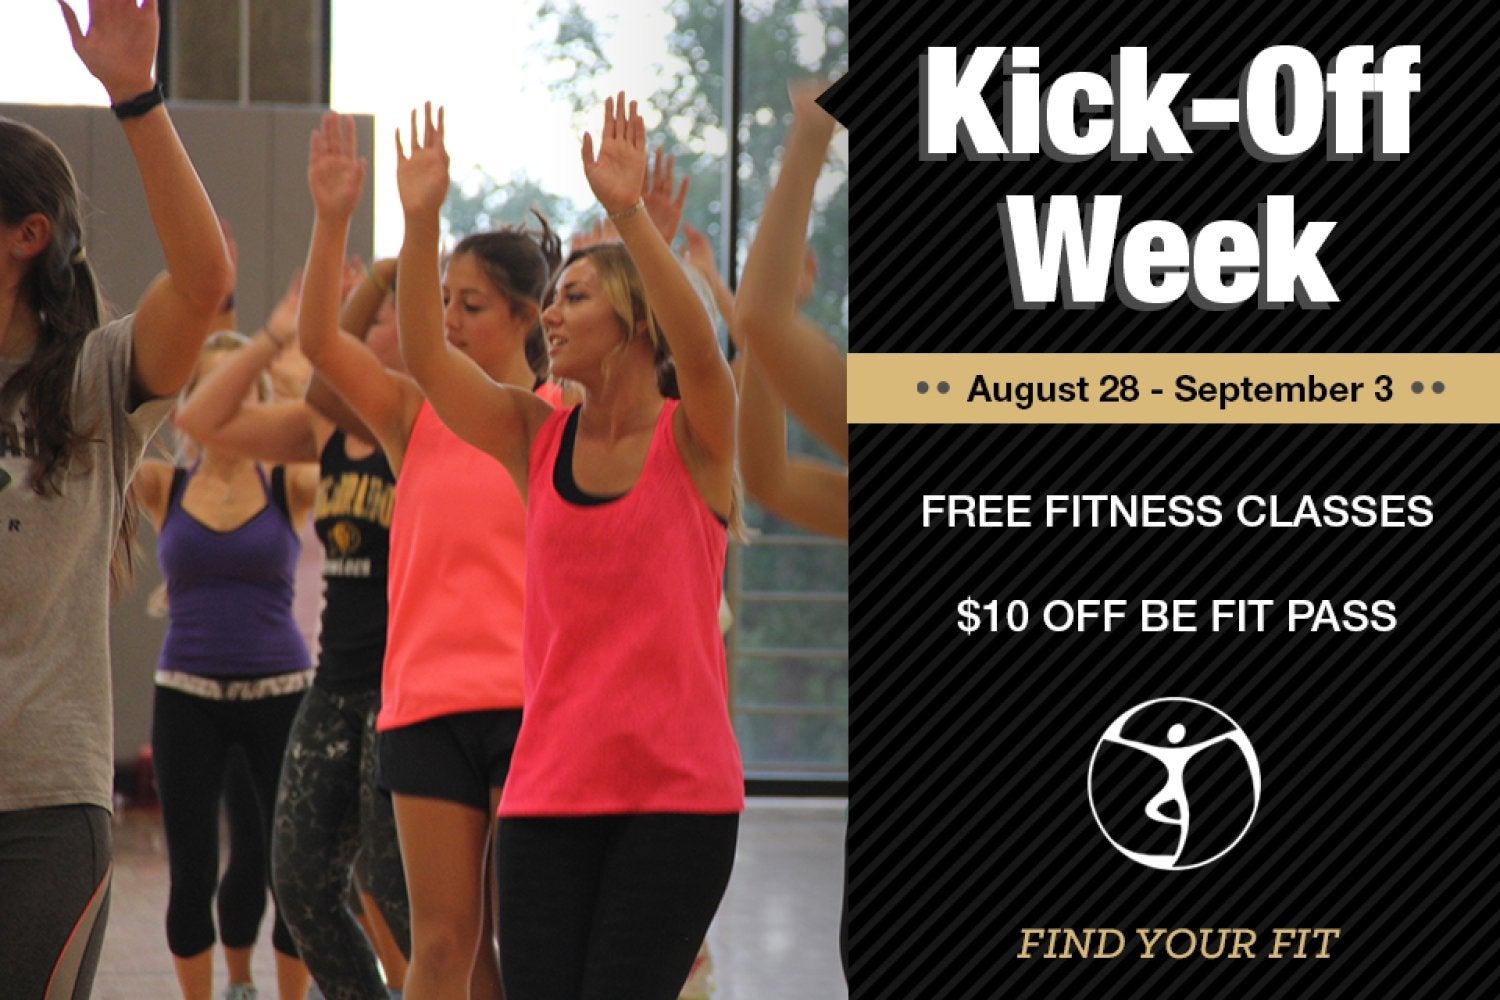 kickoff week.  free fitness classes aug 28-sept 3